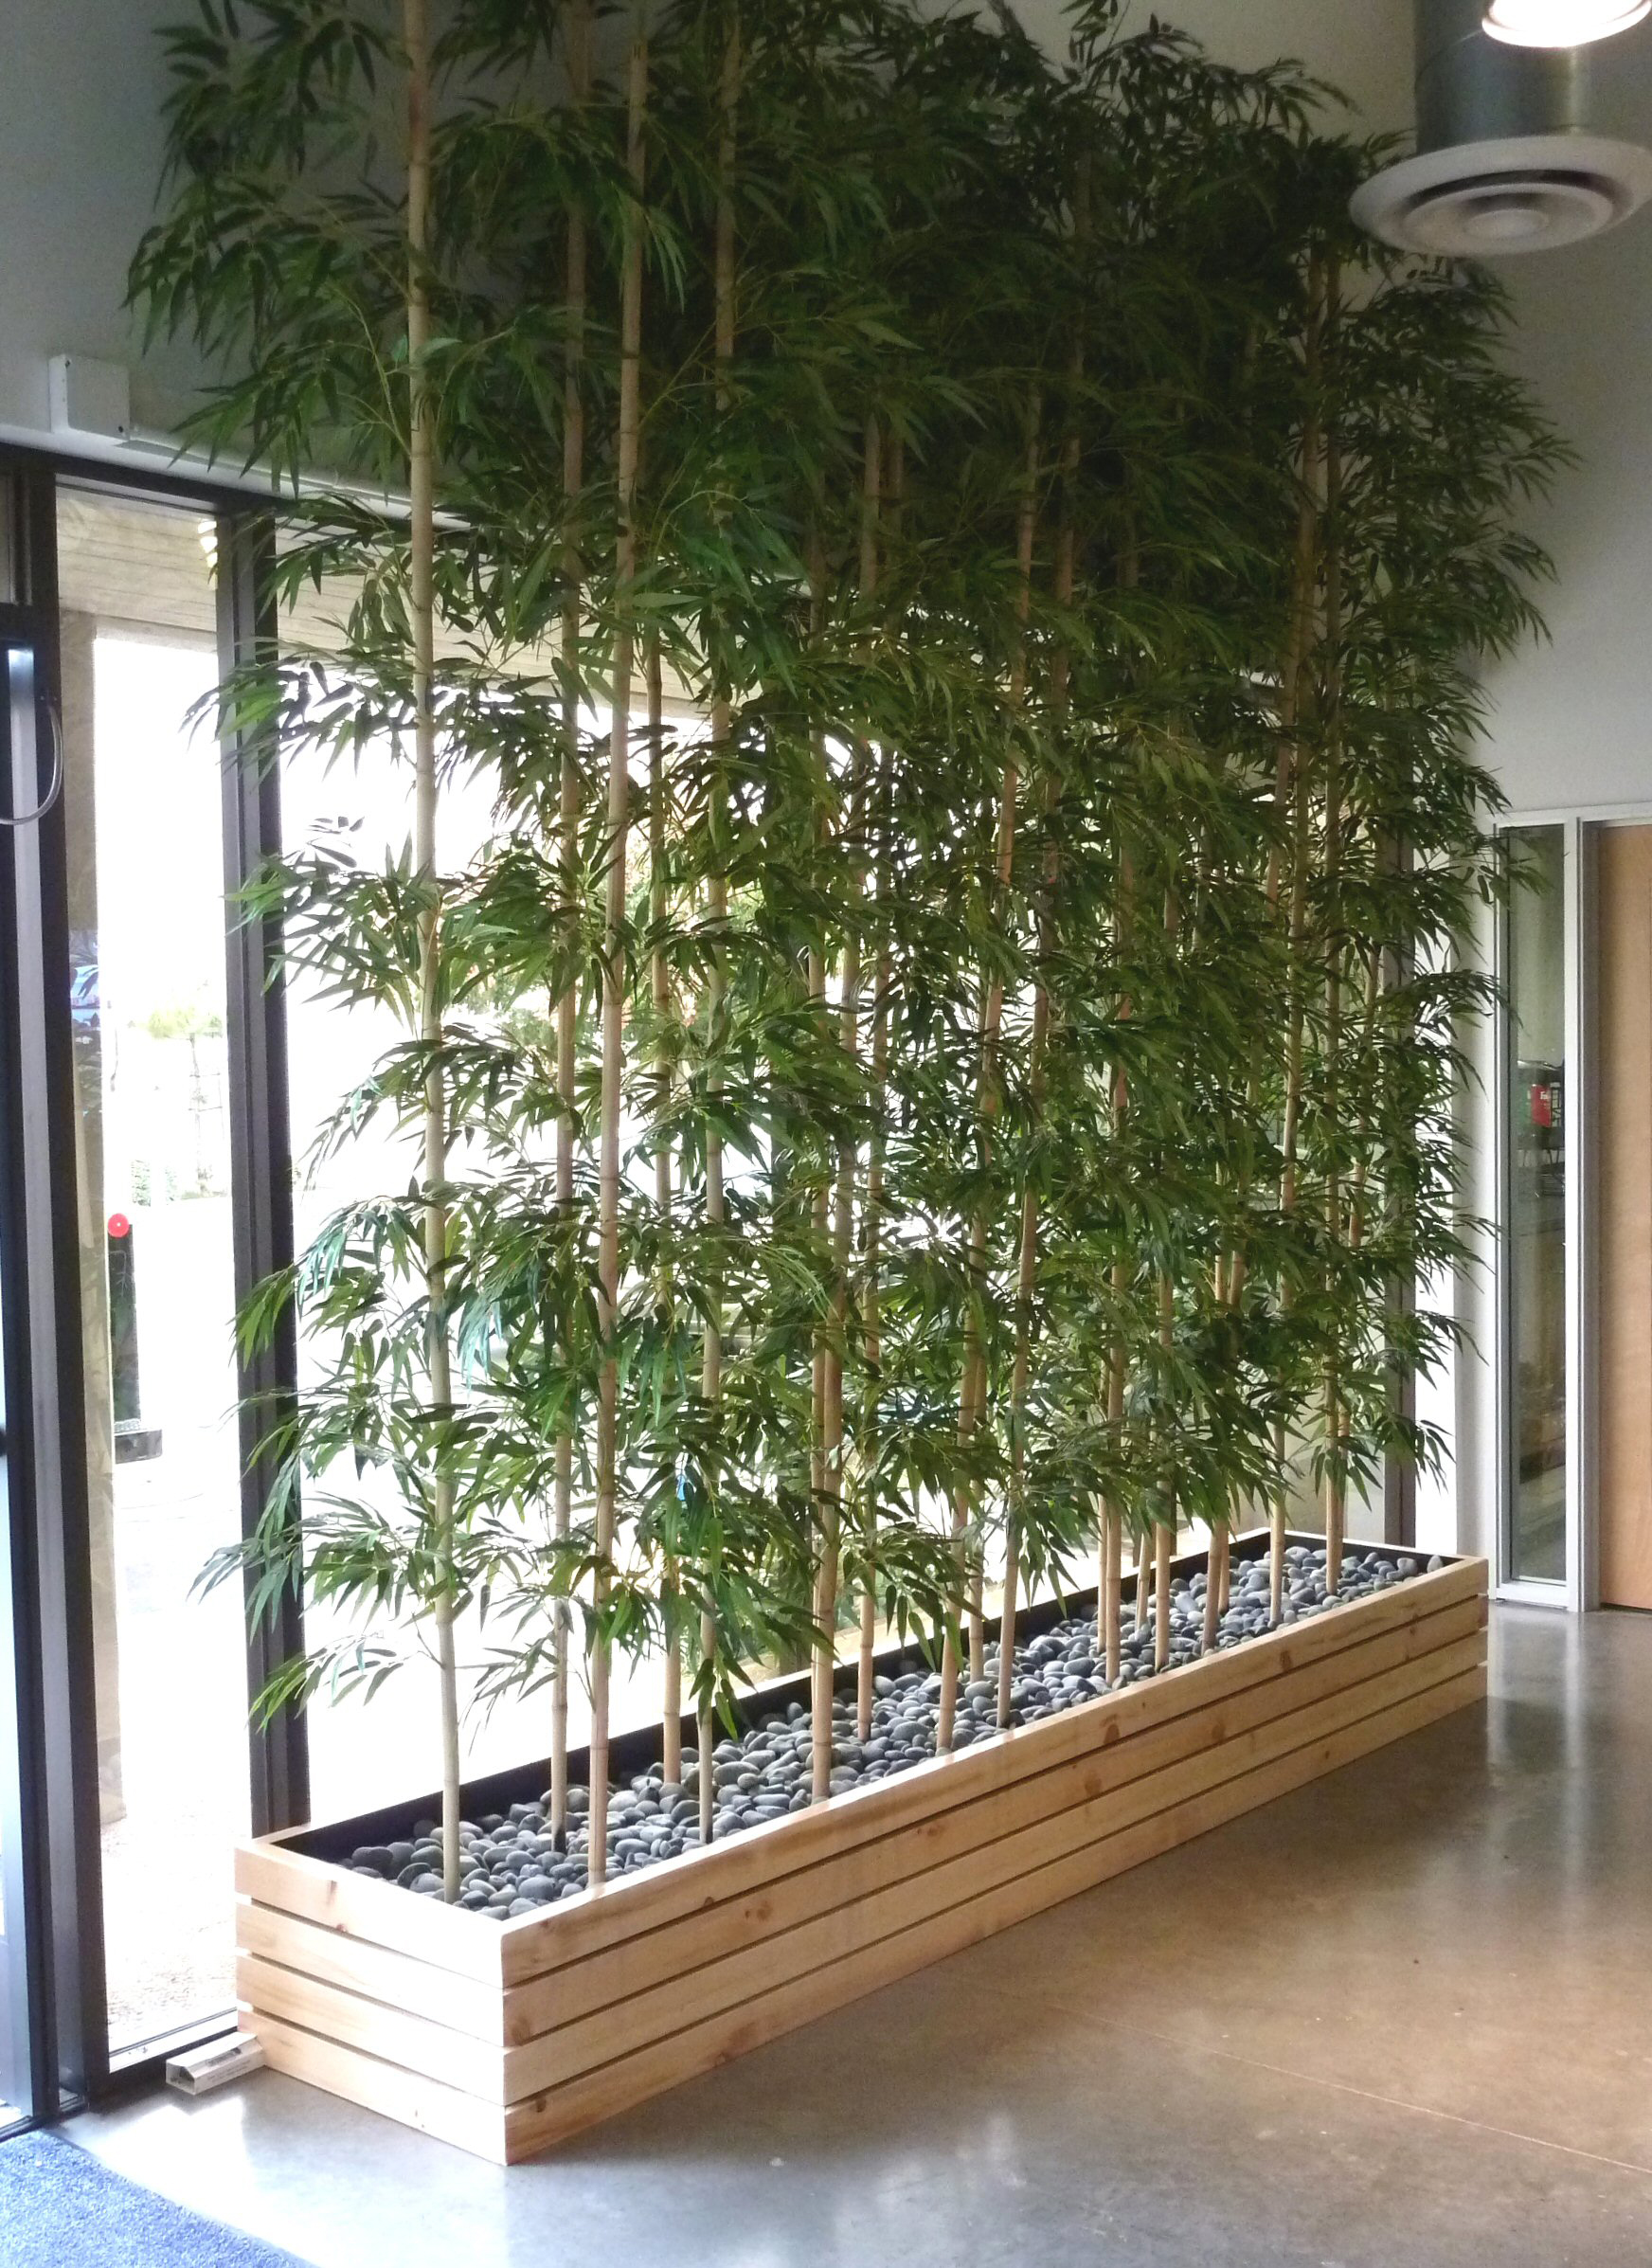 • <strong>Bamboo privacy plantings</strong>: our stylish, contemporary bamboo plantings will provide privacy while allowing light through – a great balance for your special event.